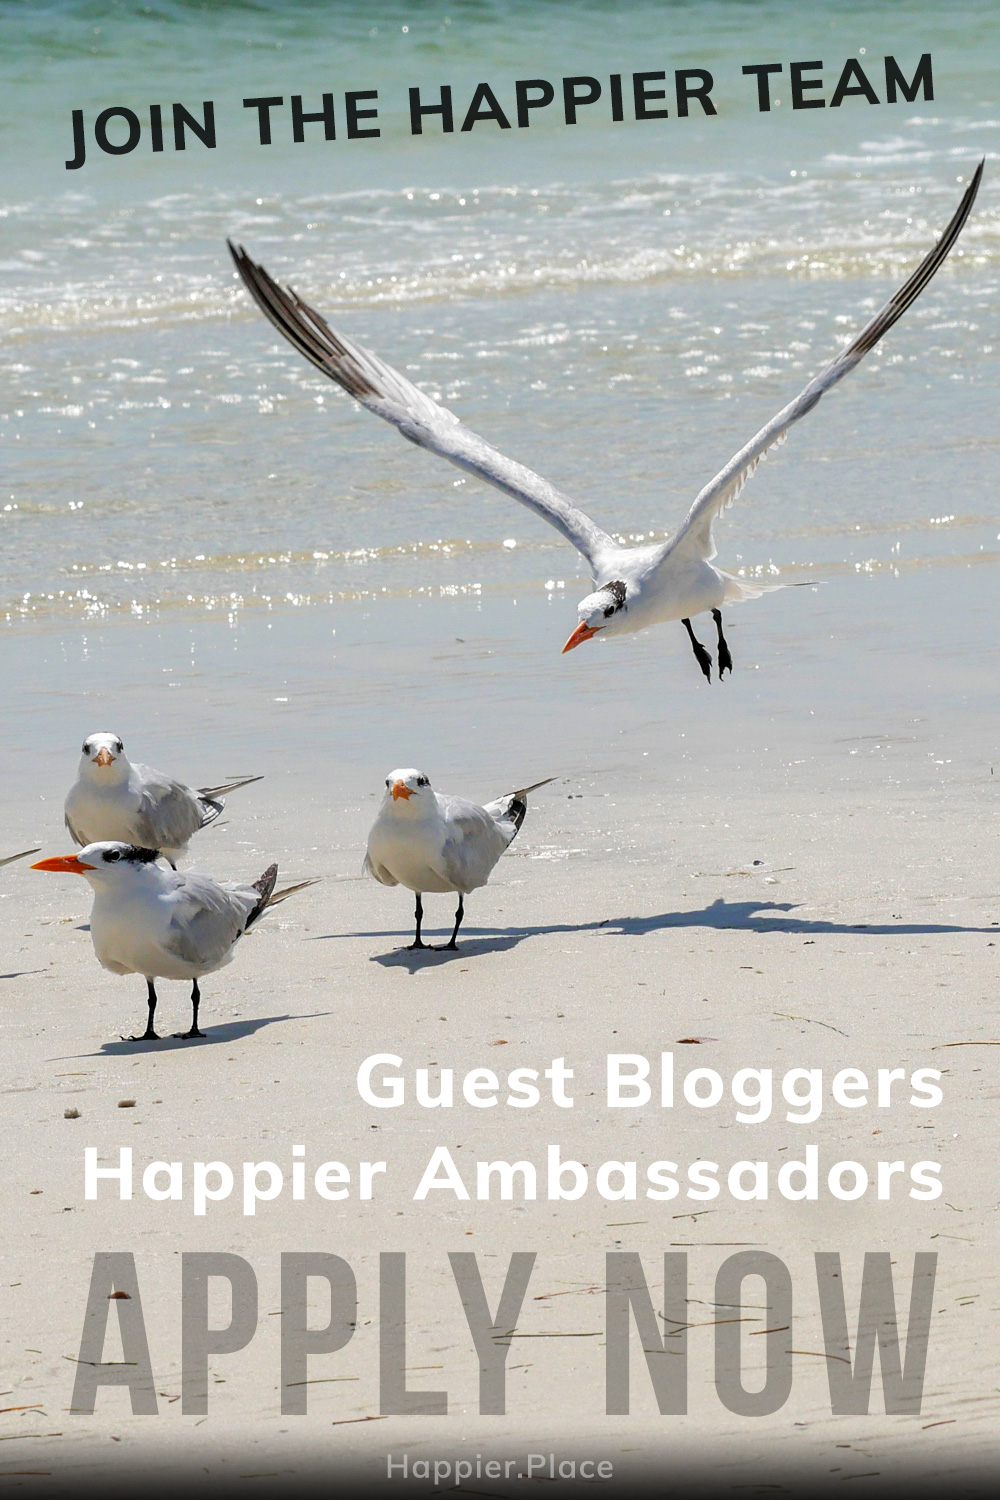 Join the Happier Team, Apply now, Guest Bloggers, Happier Ambassadors, happier place, royal tern landing among flock on beach